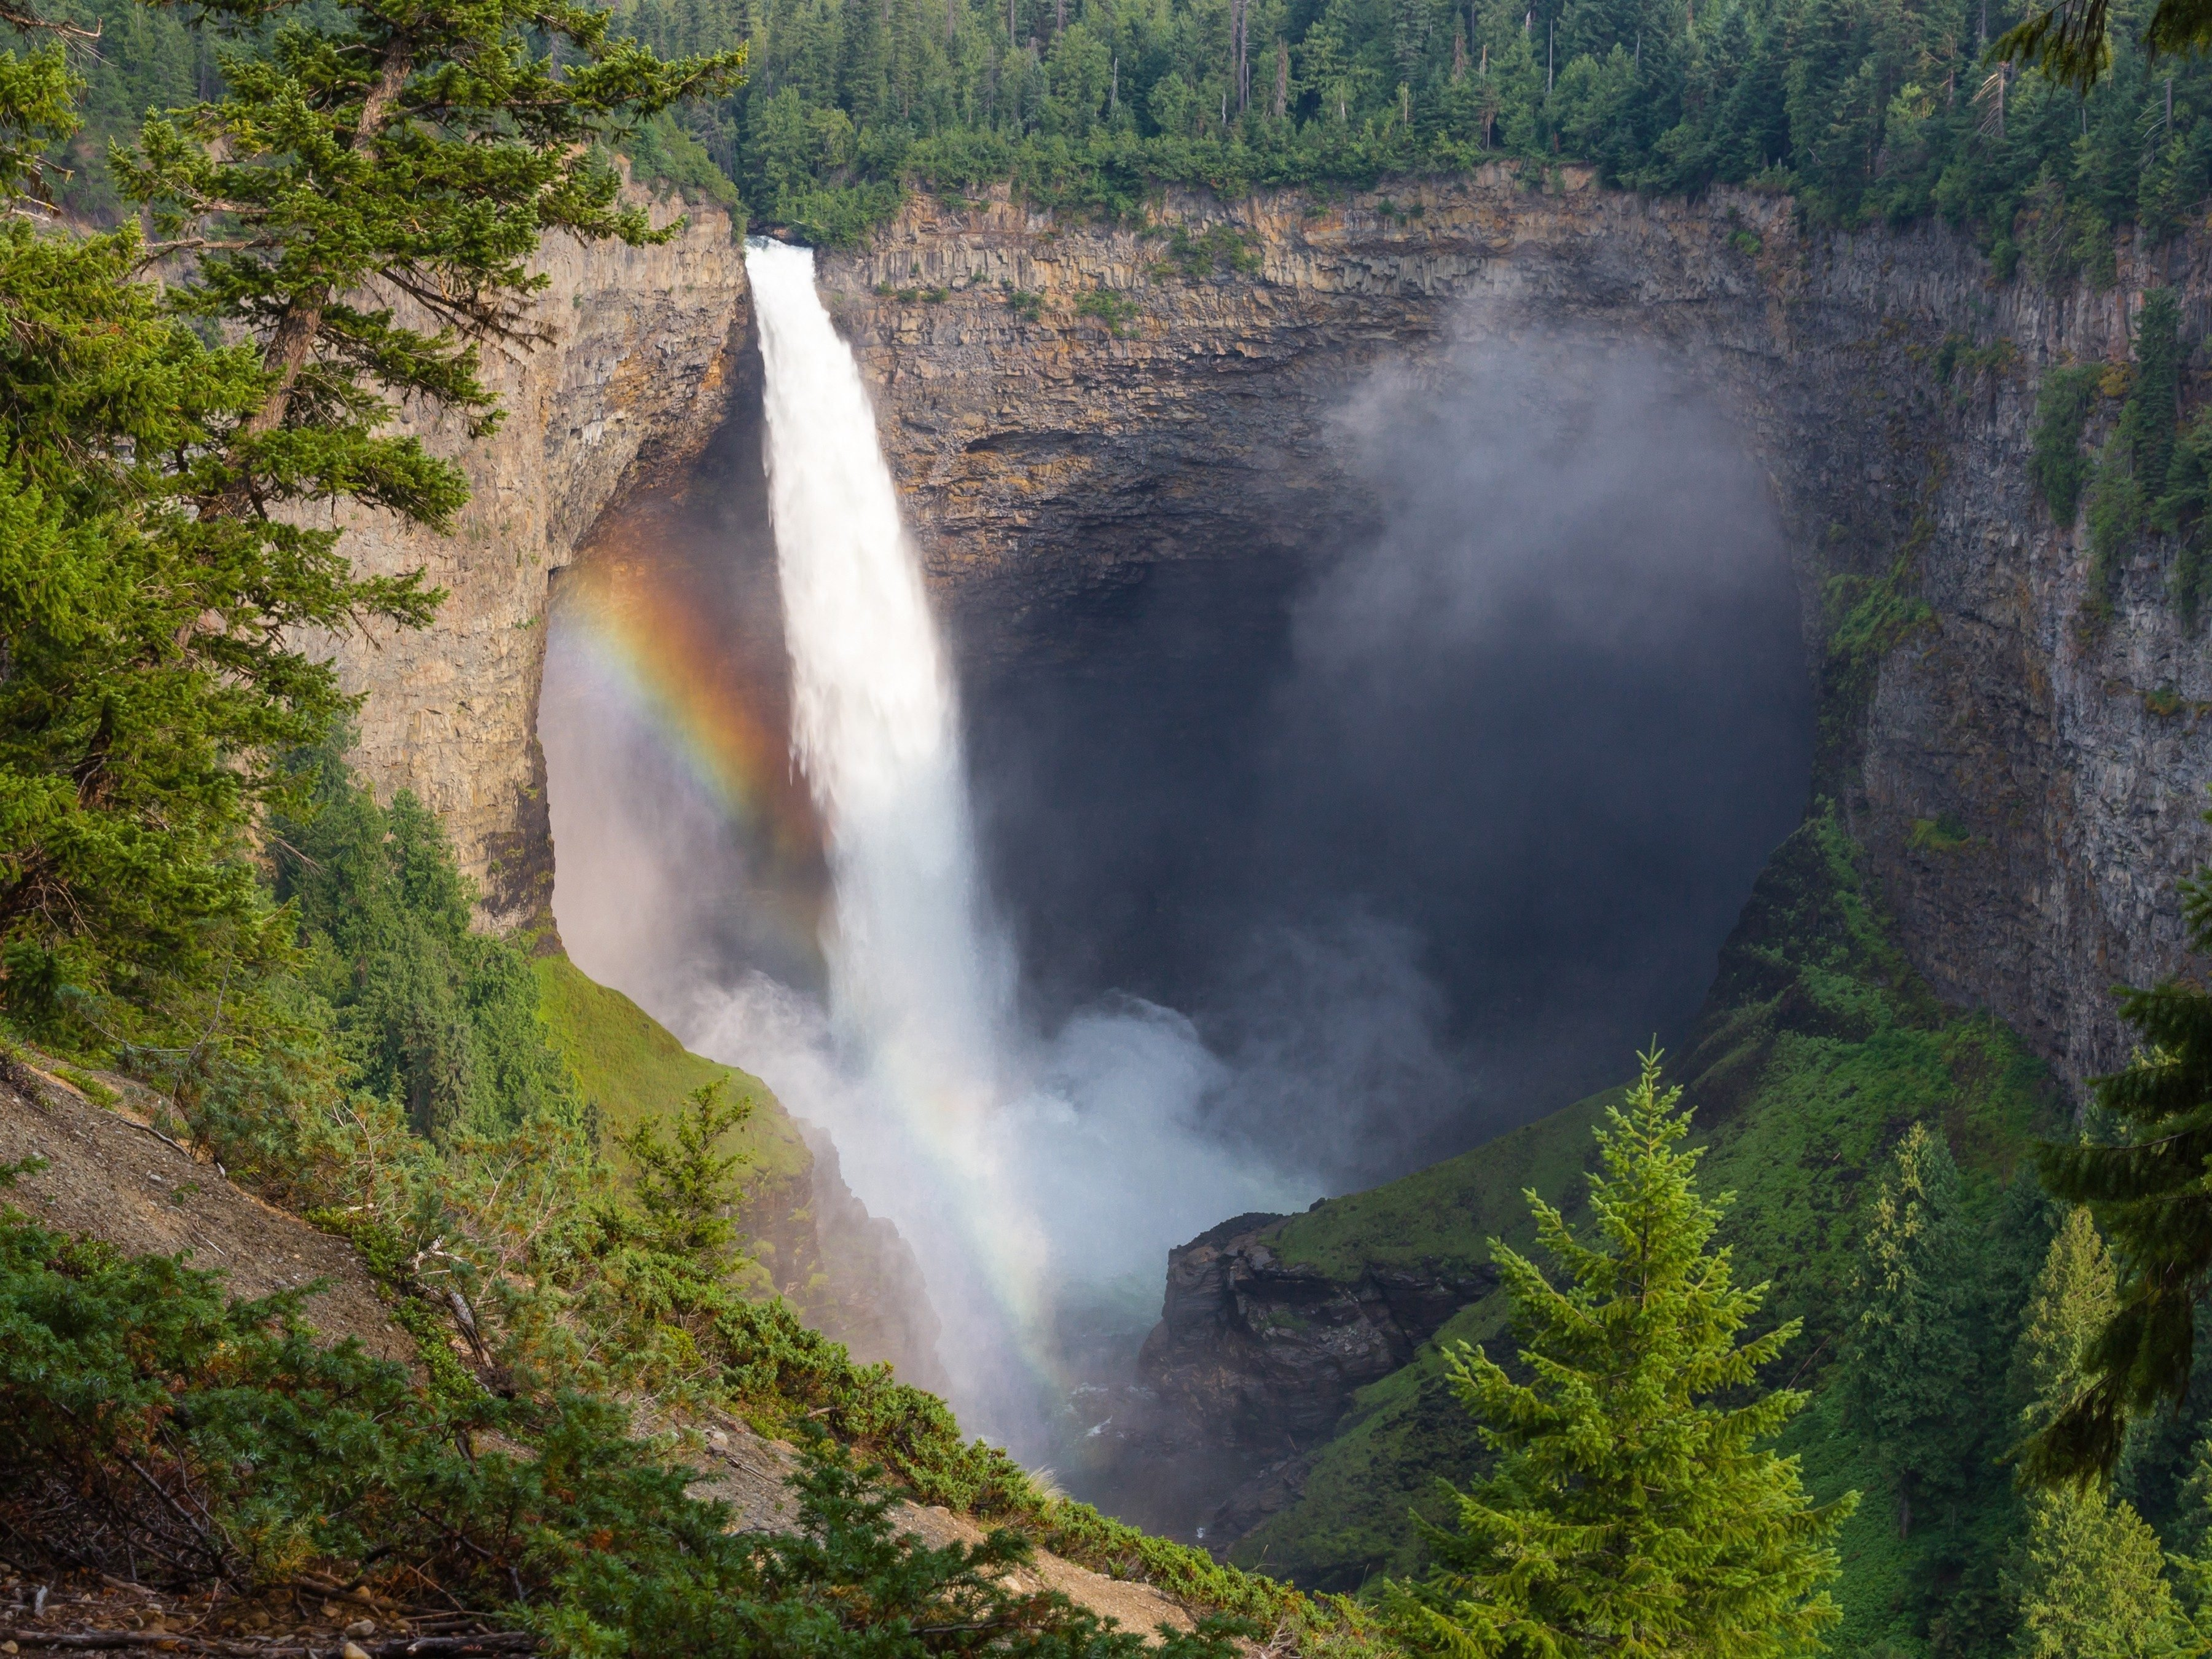 The 10 Most Beautiful Waterfalls In Canada To Visit 1 10 Reader 39 S Digest